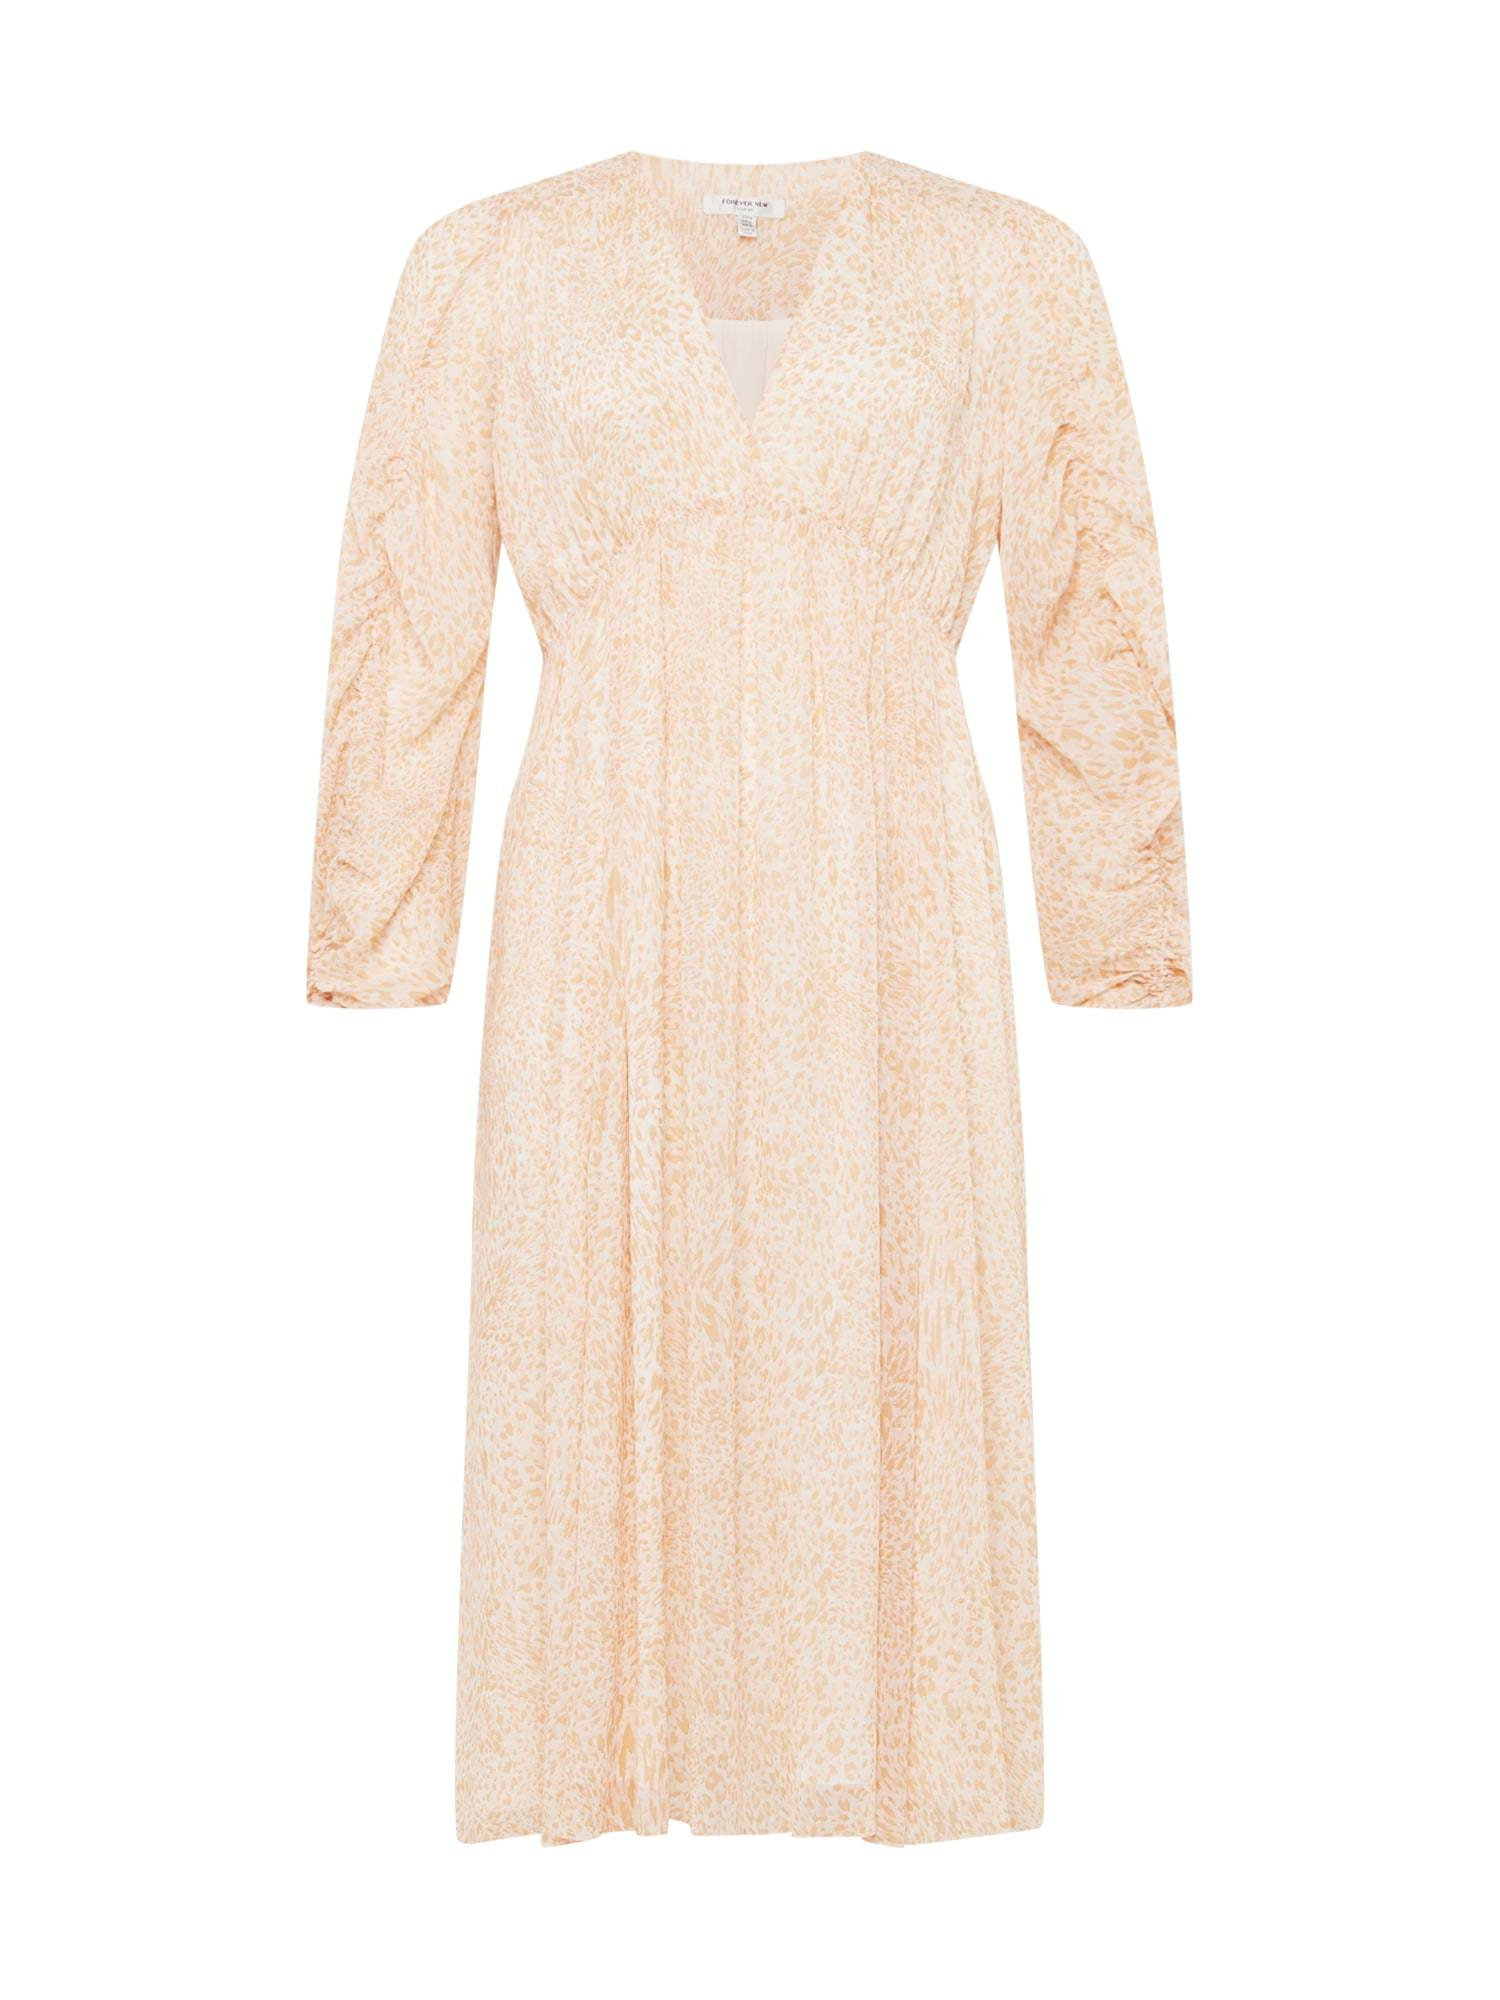 Forever New Curve Robe  - Beige - Taille: 24 - female